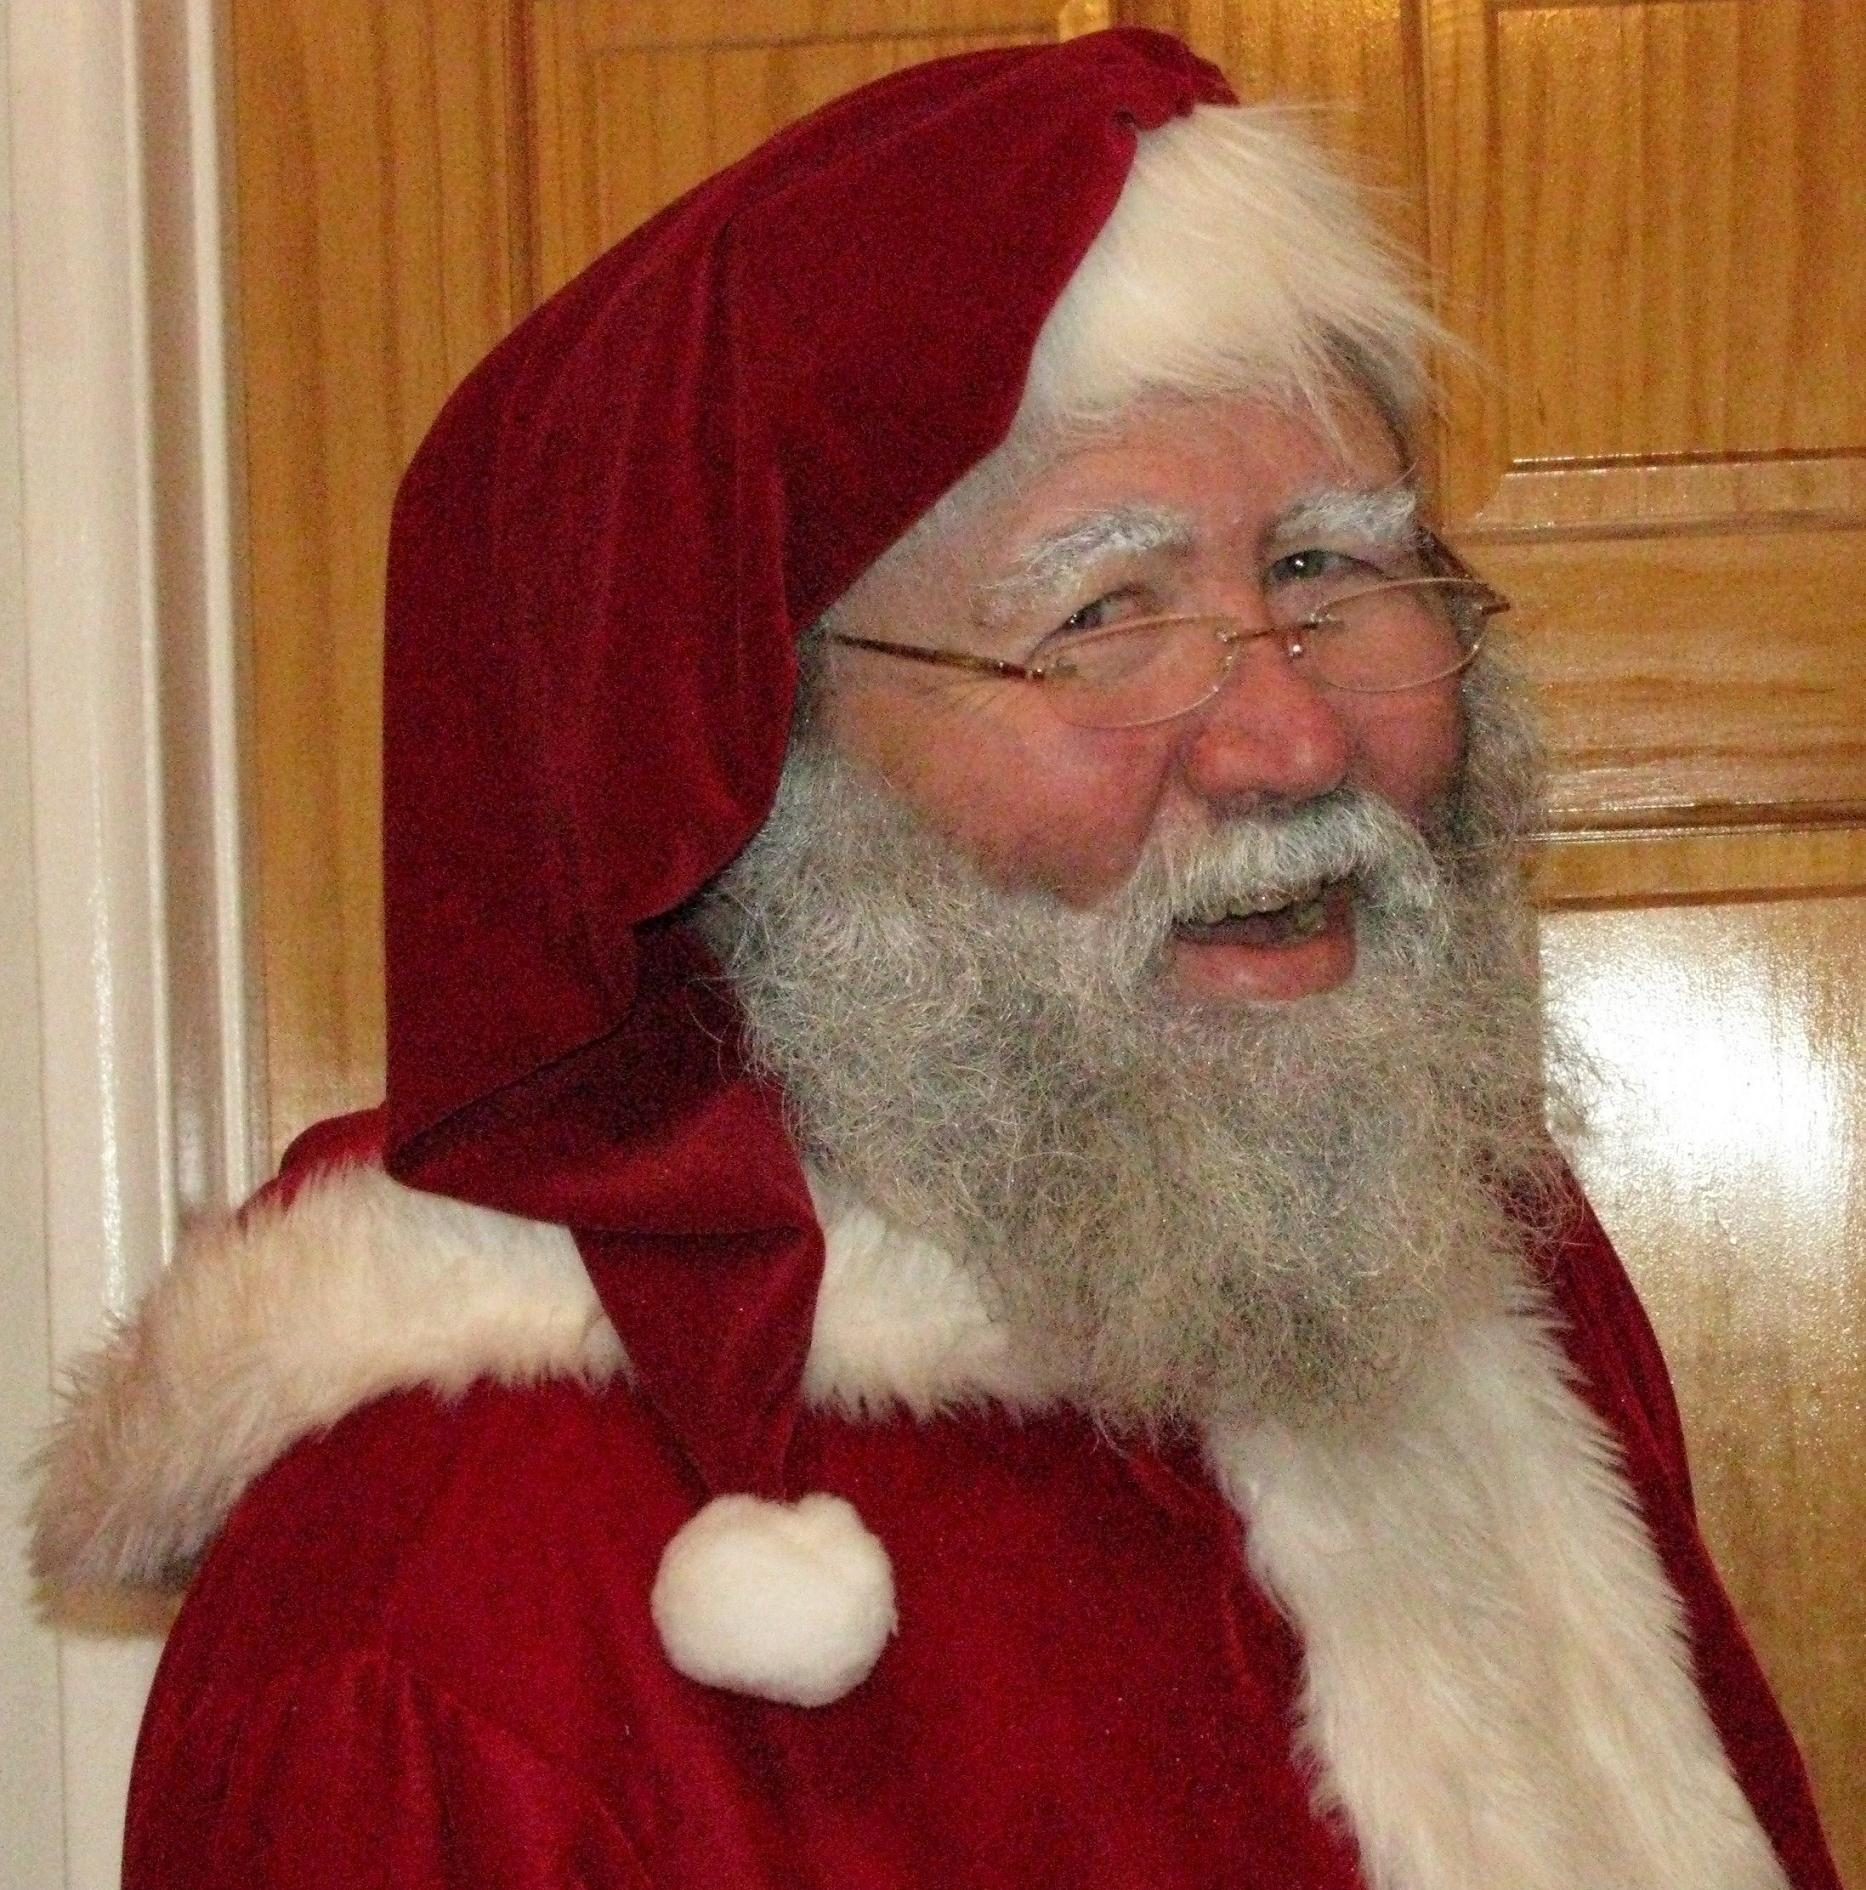 santa-michael-real-beard-3